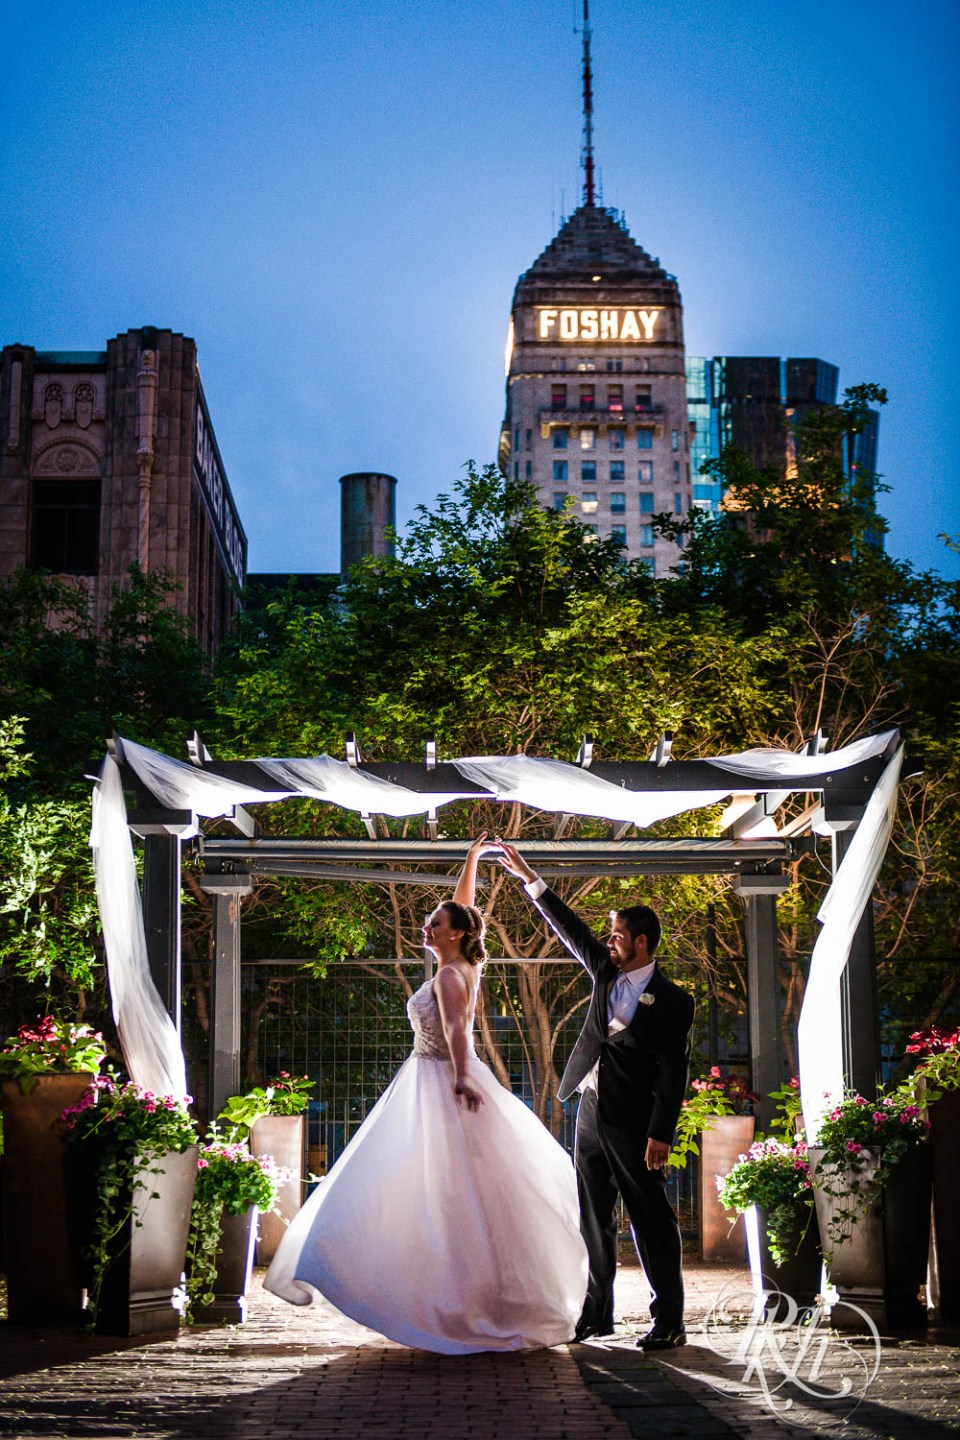 Bride and groom dancing in front of Foshay.